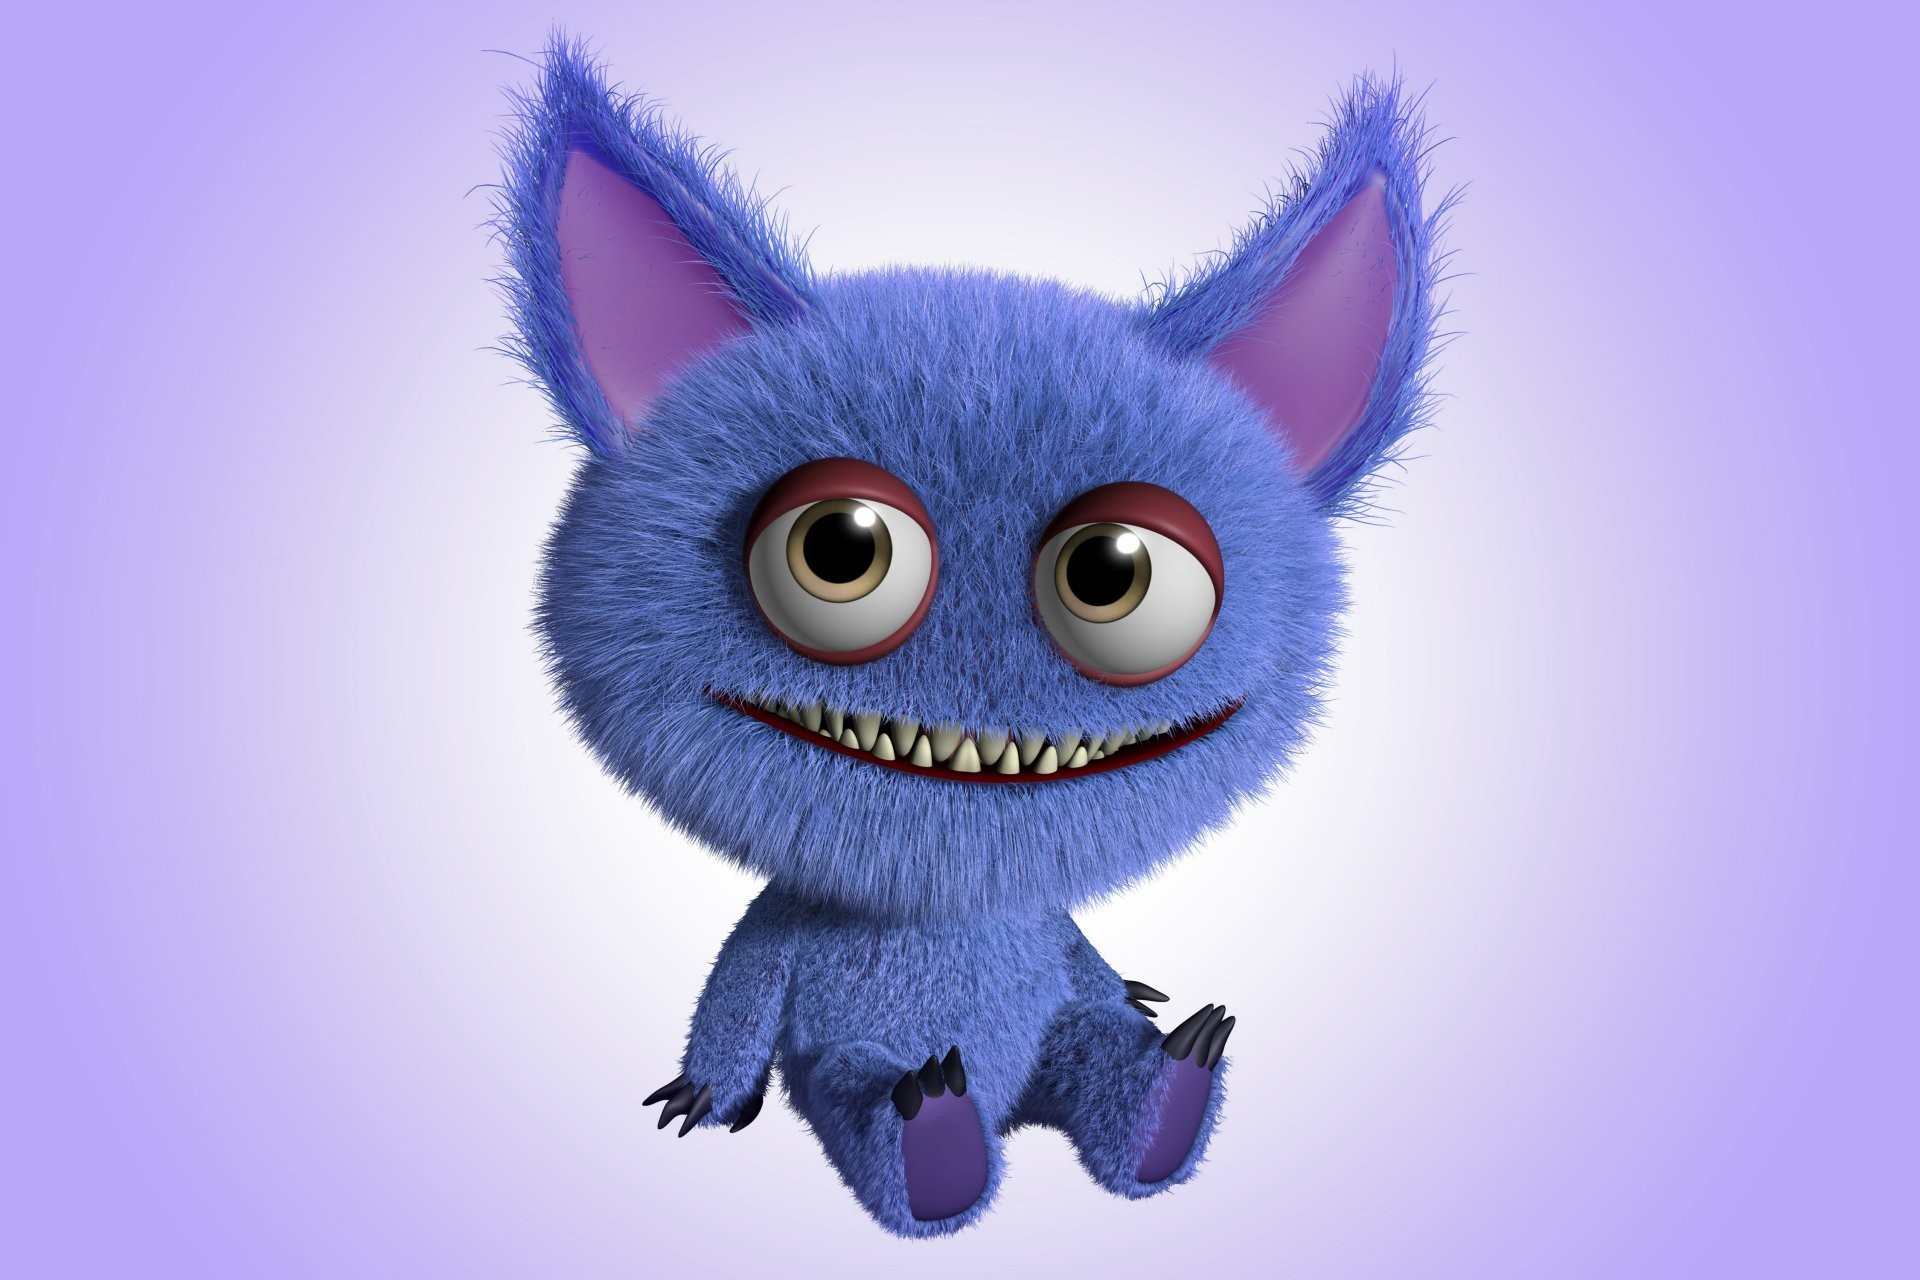 monster cartoon cute 3d funny fluffy animated monsters cartoons inc got smile entertainment ve desktop ears eyes adult